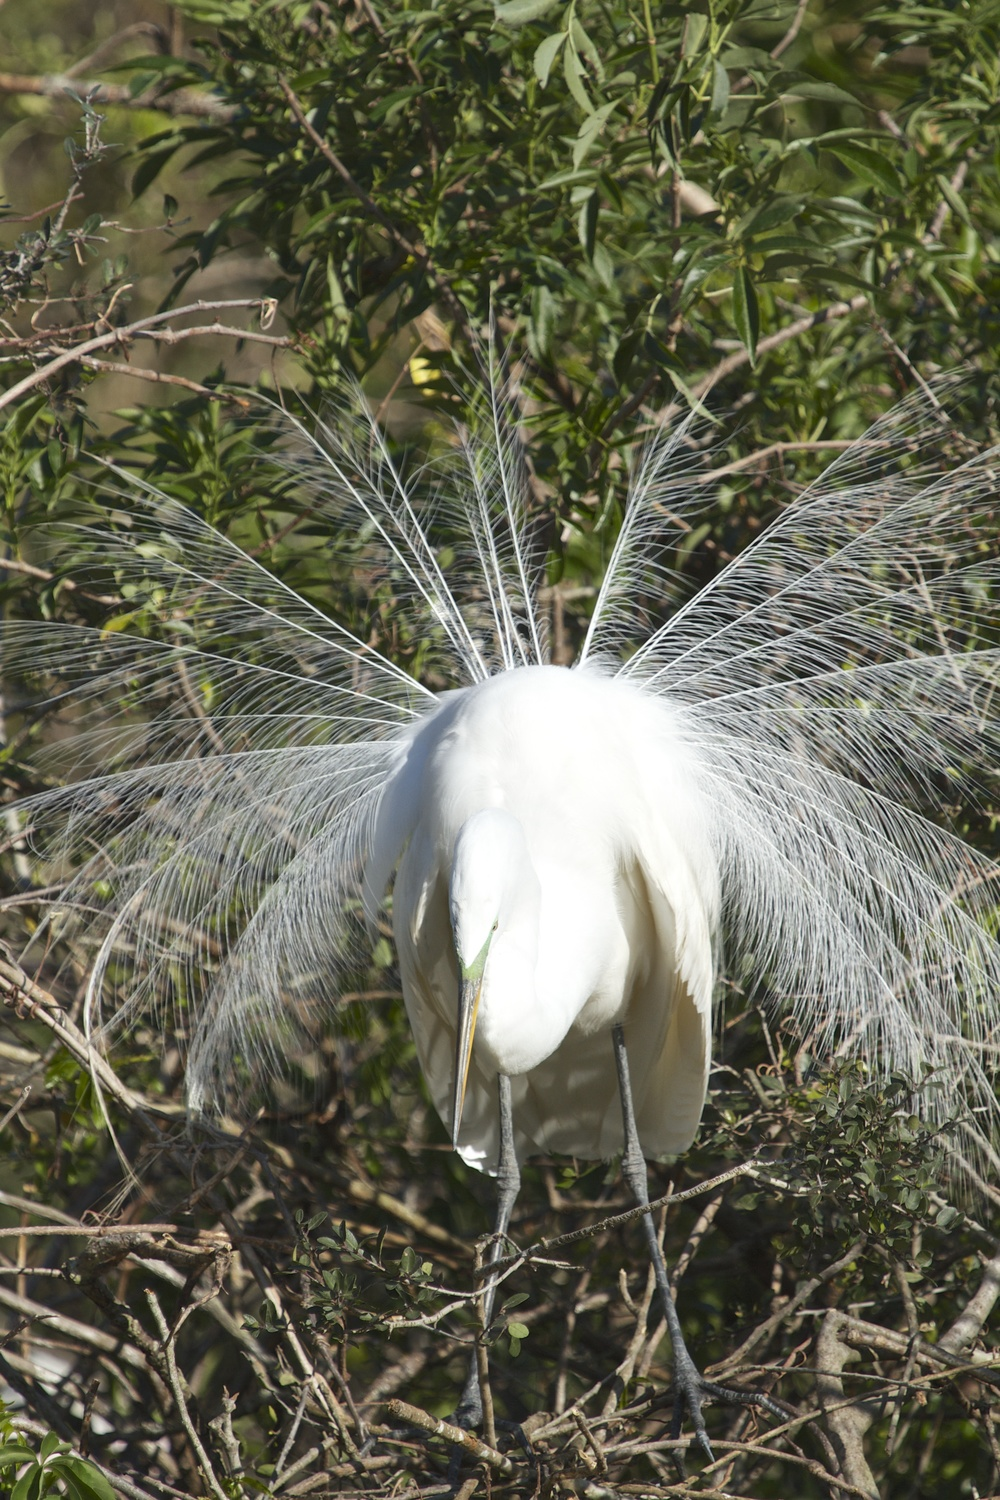 A Great Egret displays its plumes!